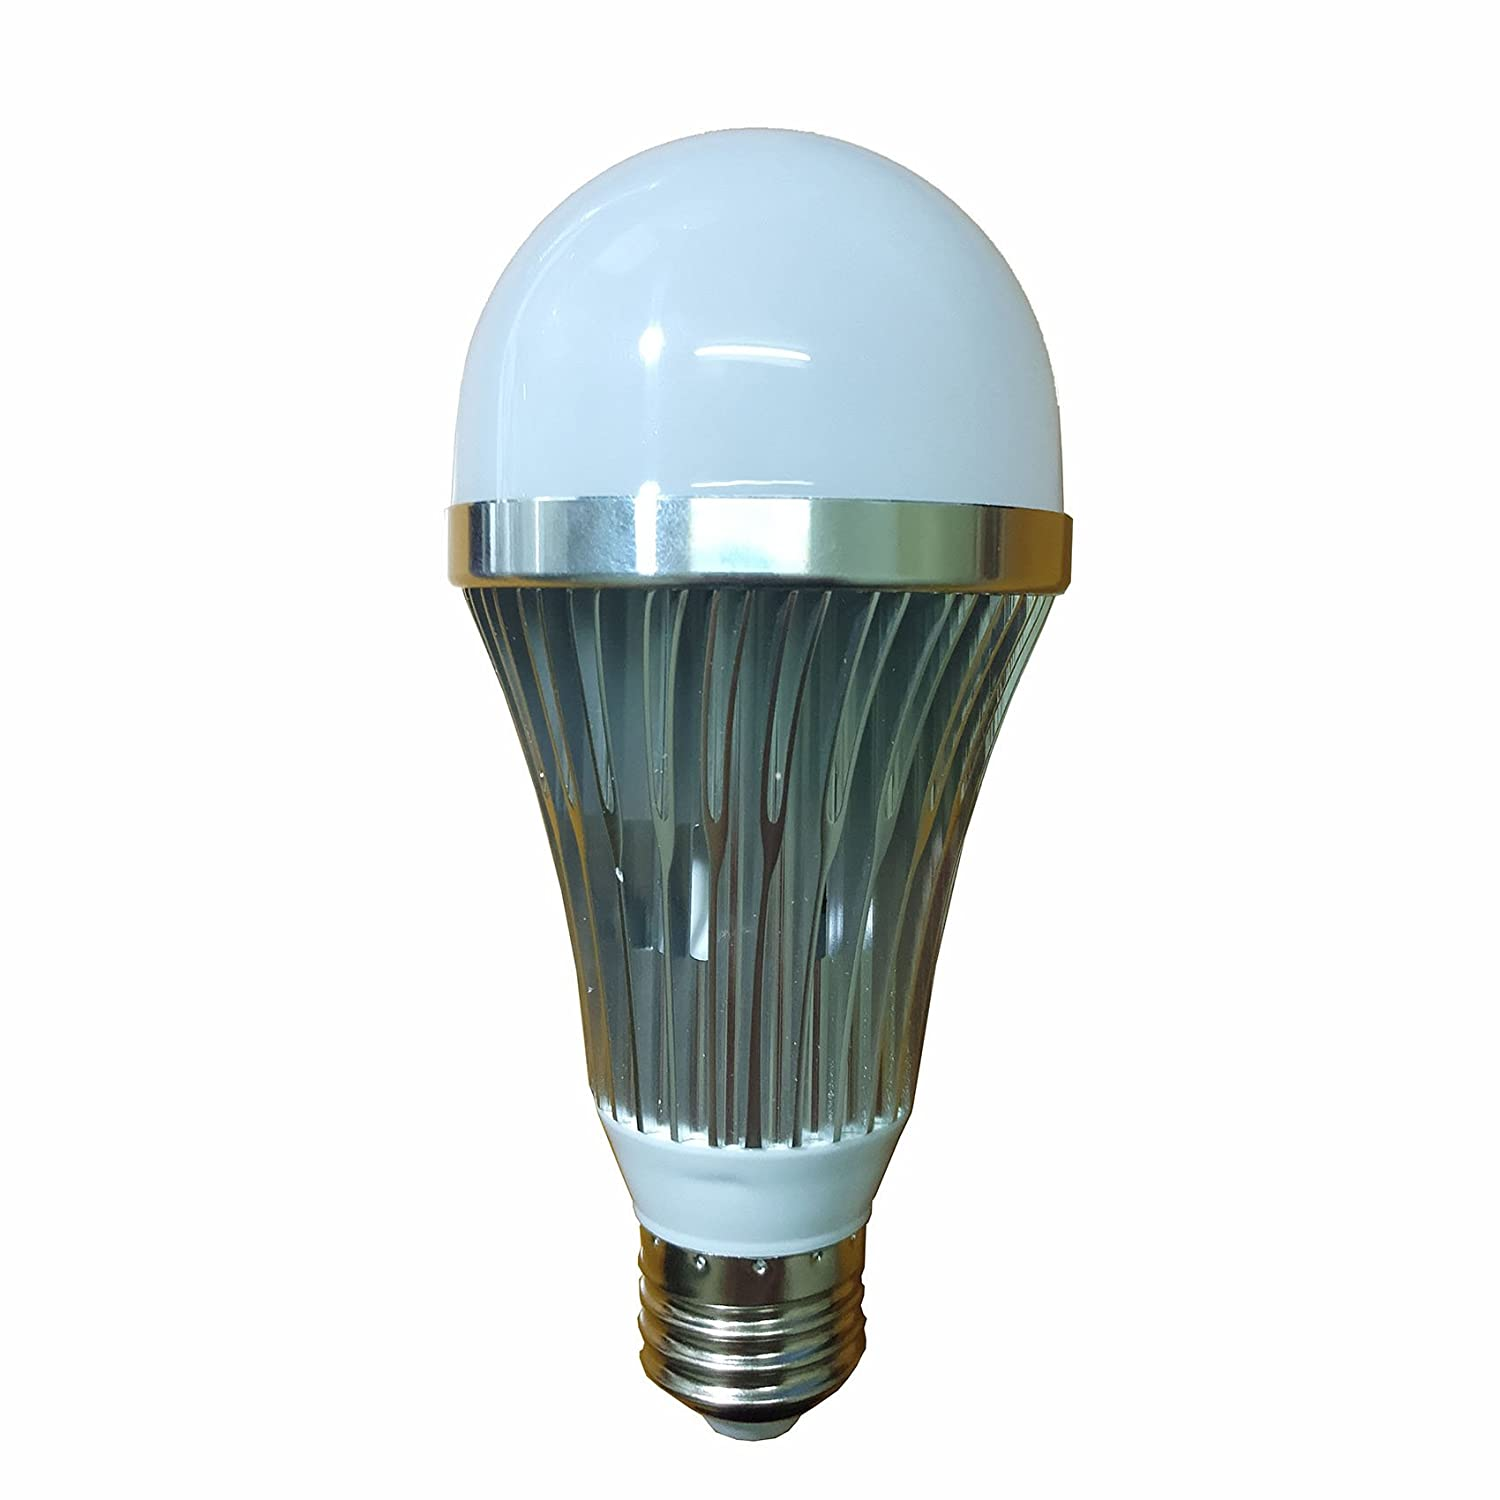 bulbs lamp white shell products bulb dawn light led warm to degree dusk dimmable lumenbasic reflector